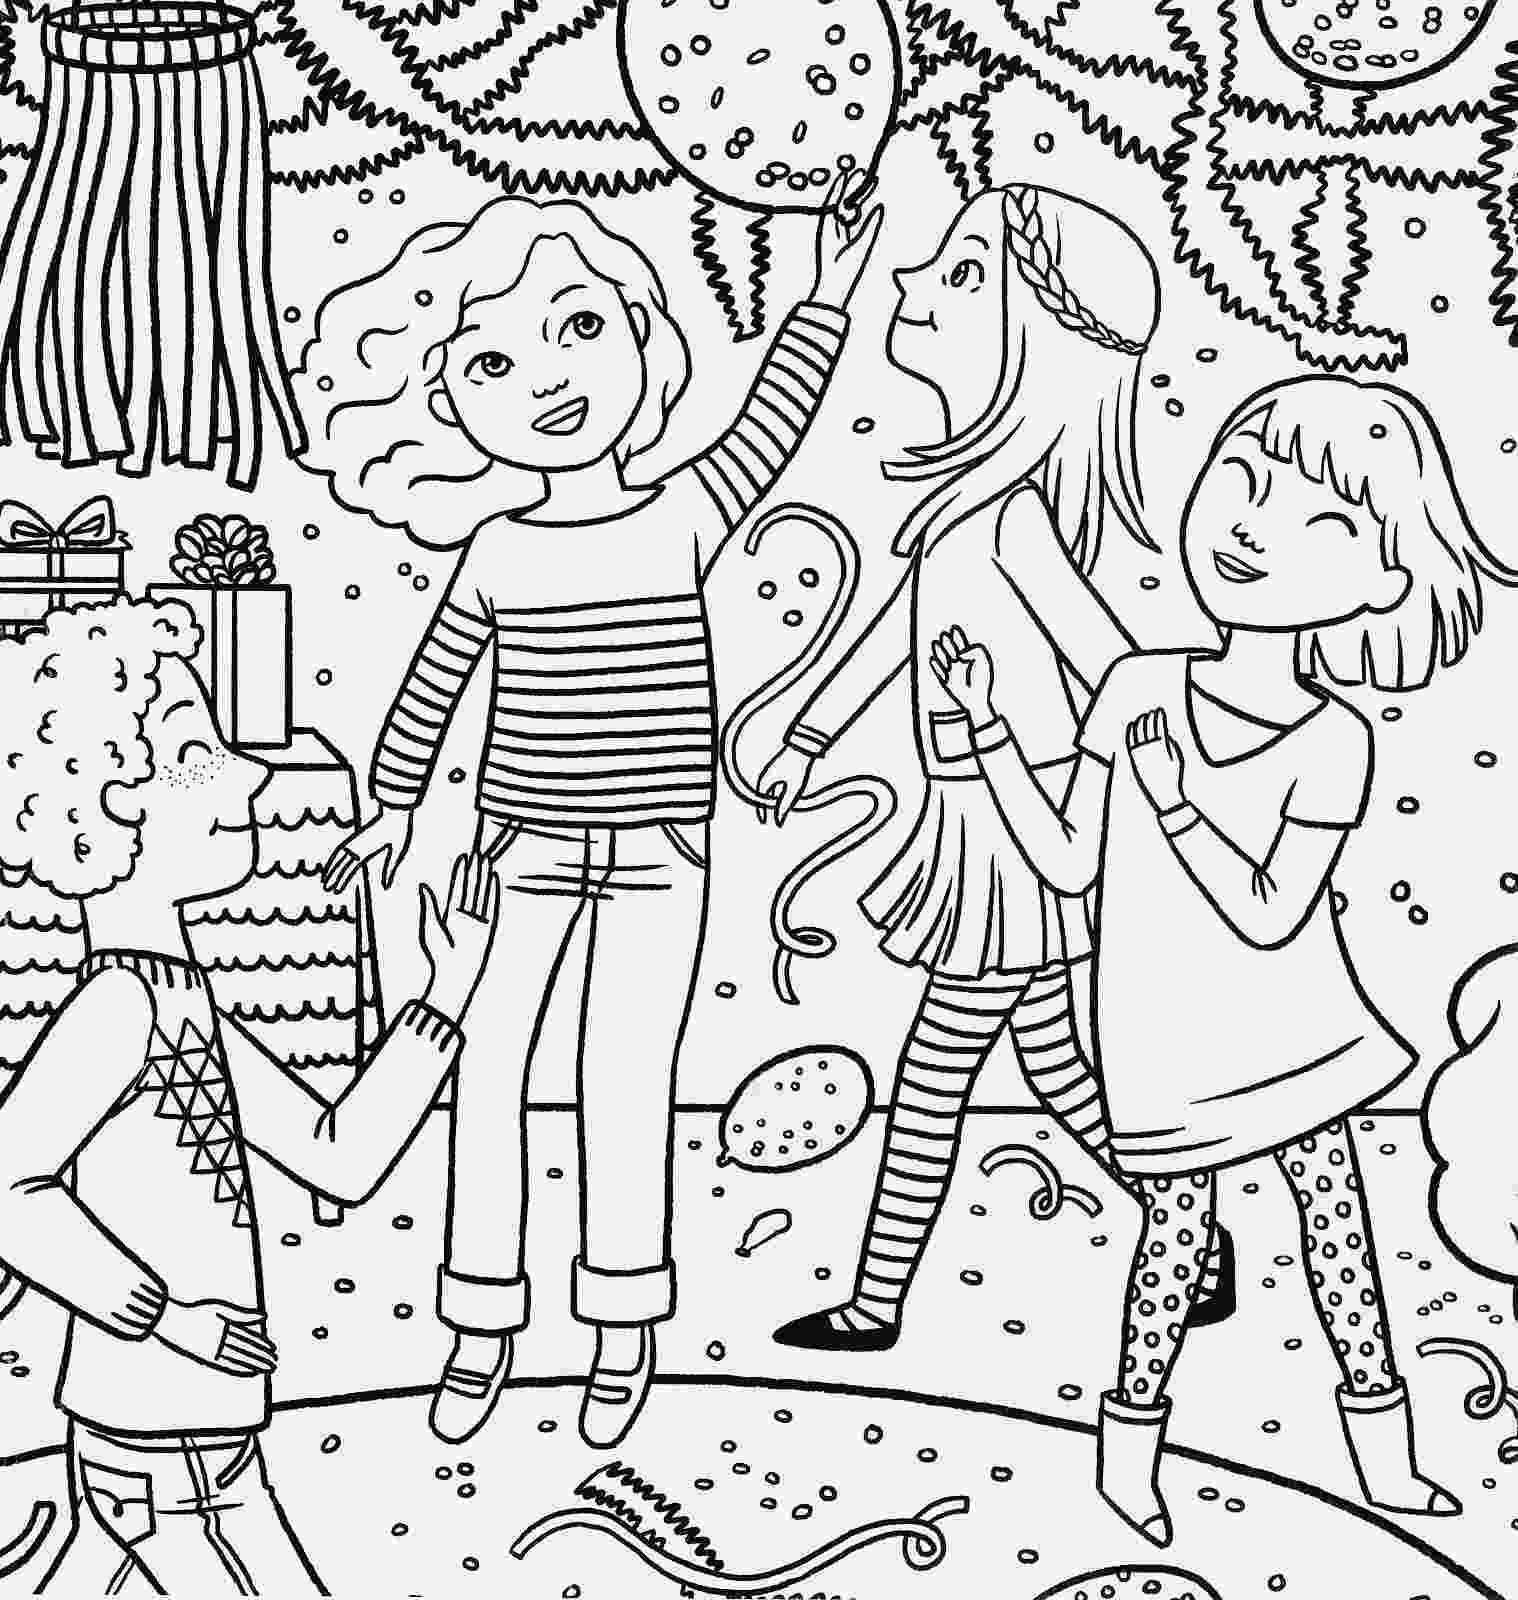 american girl coloring my american girl coloring pages small dolls in a big world american coloring girl